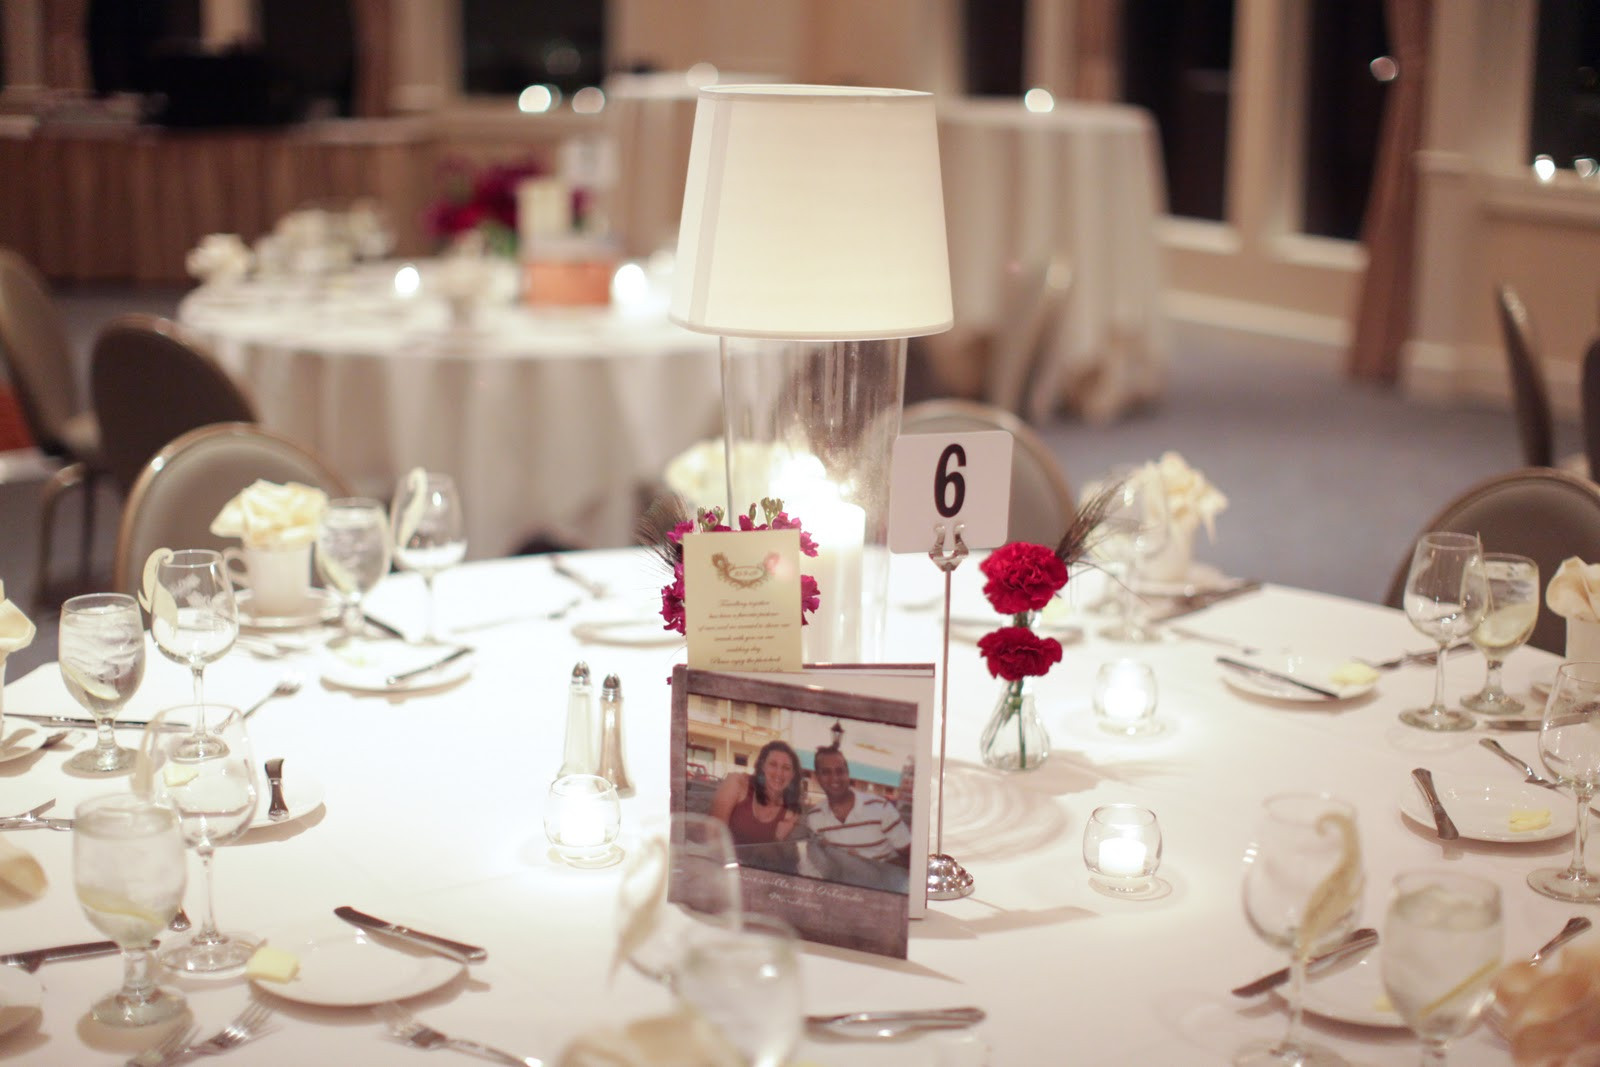 Best ideas about DIY Wedding Table Decorations . Save or Pin Nàe Chic Wedding DIY Table Decor Now.